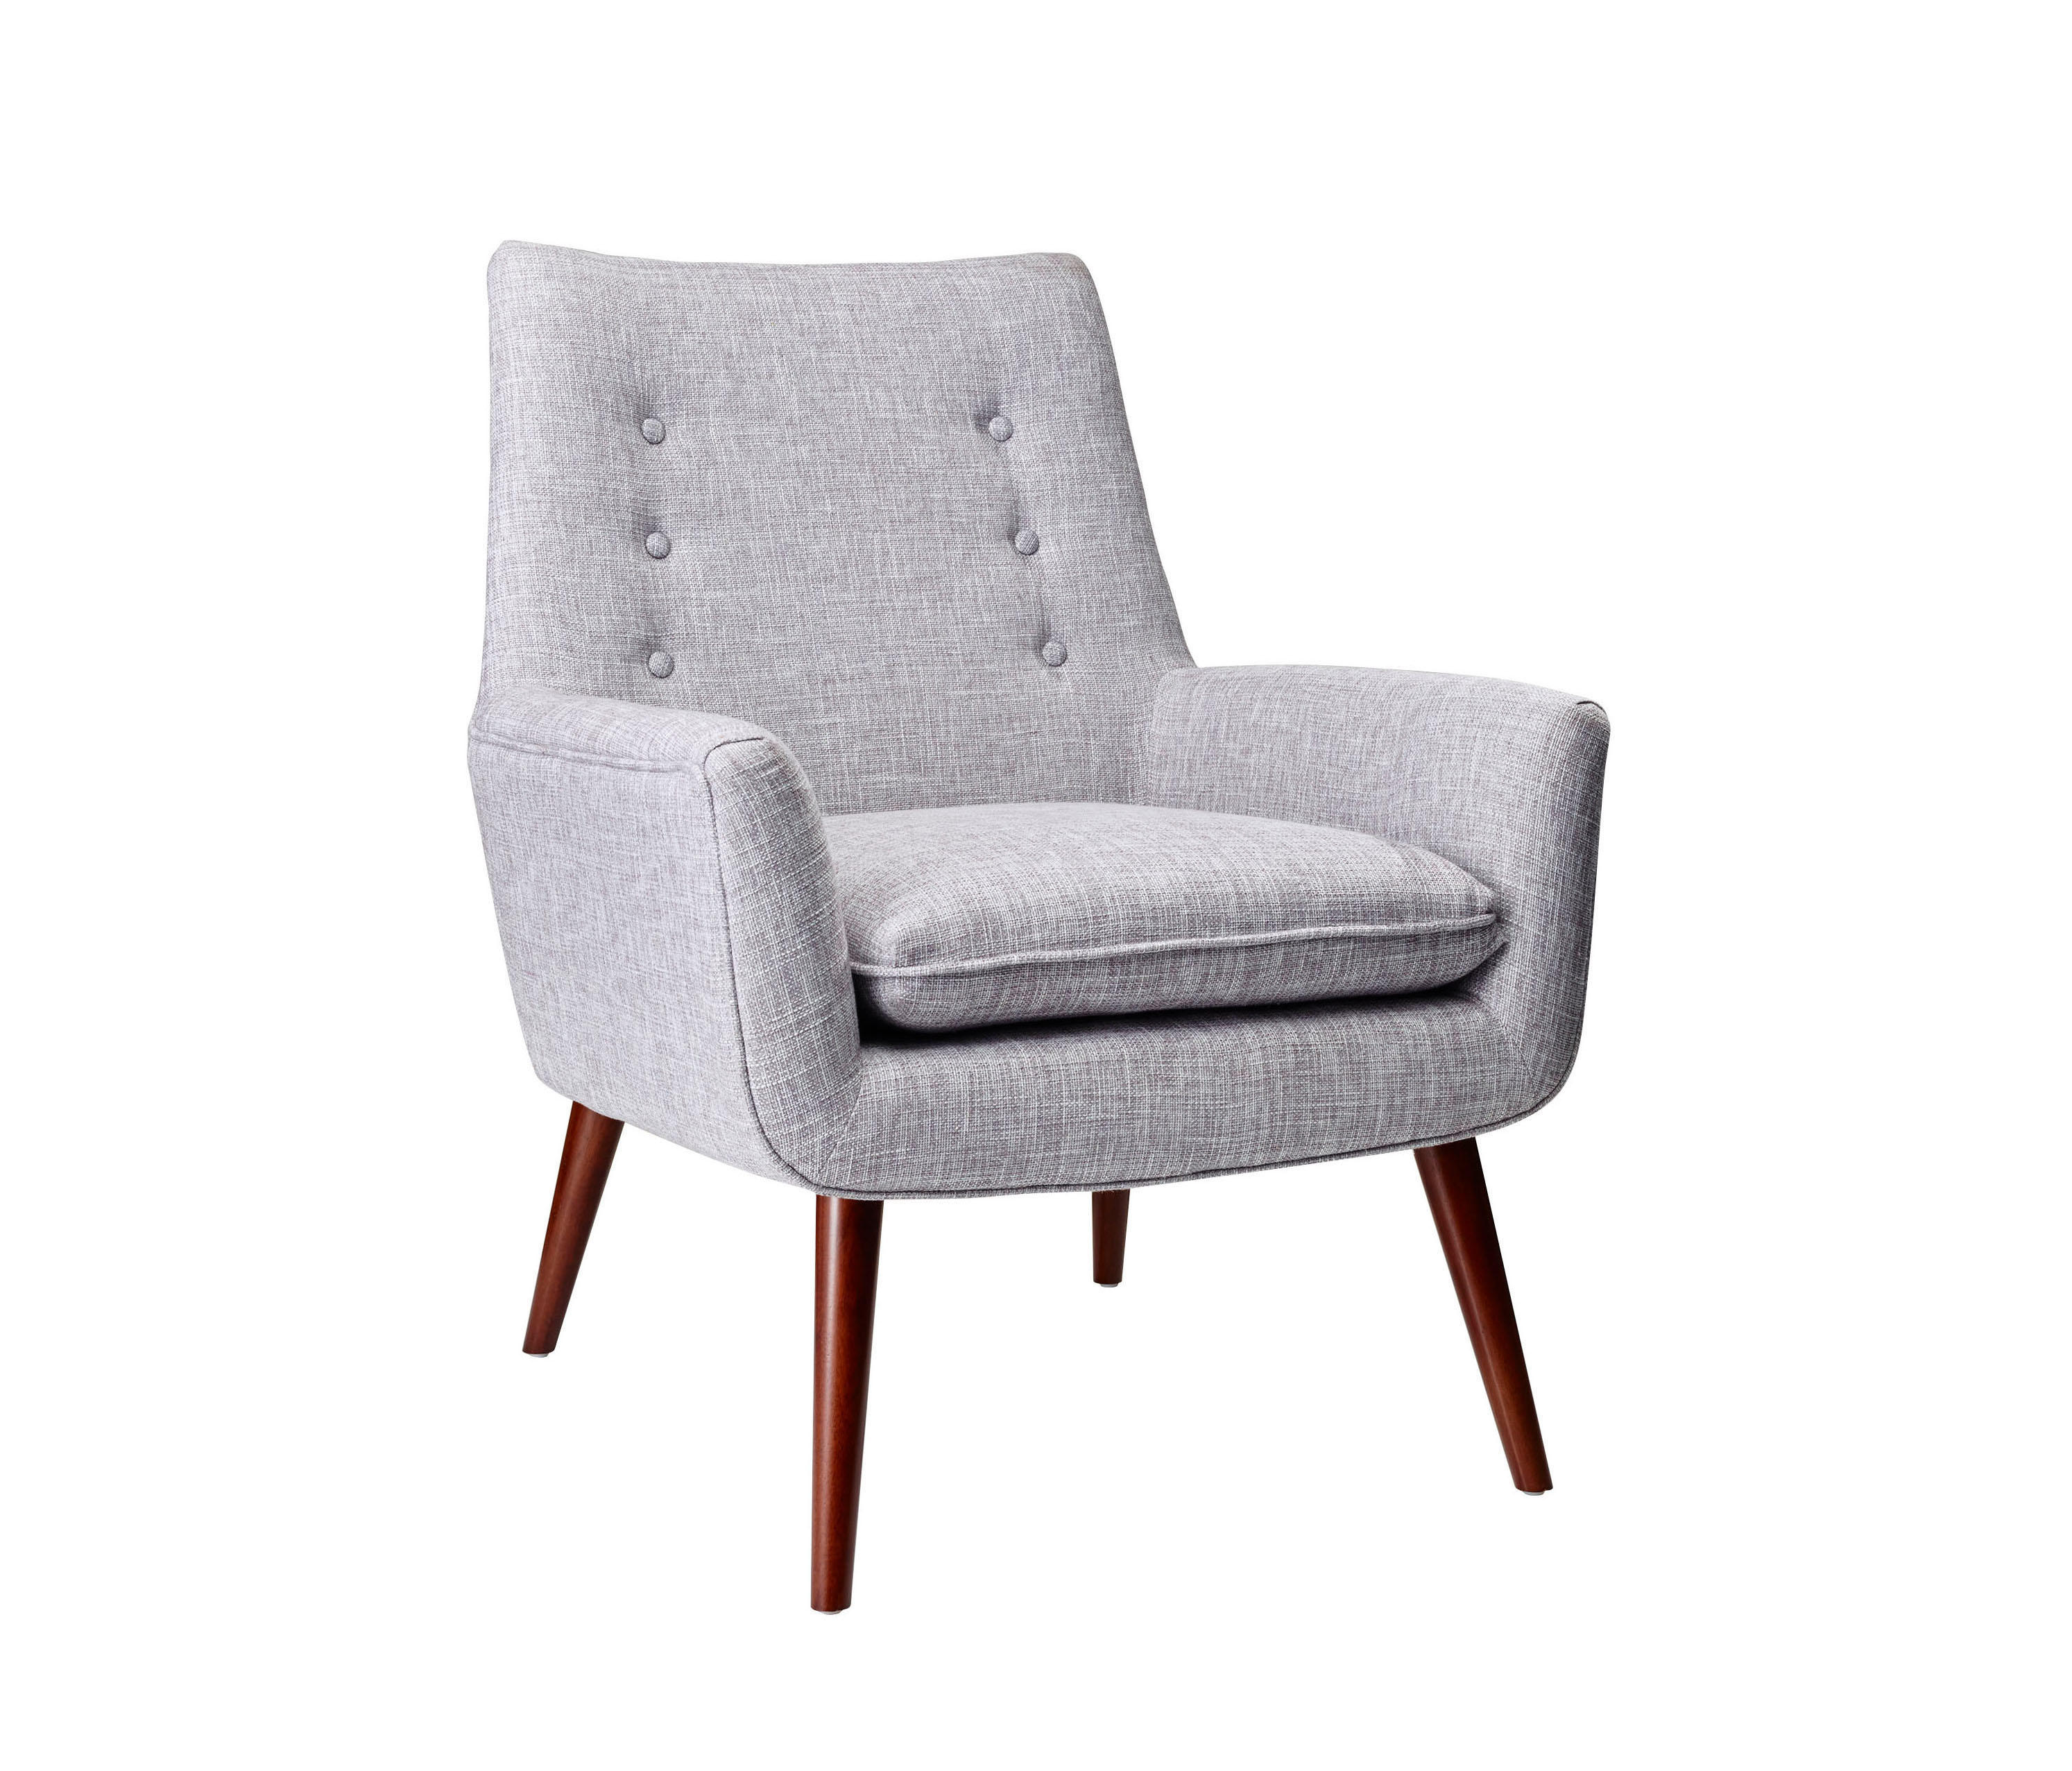 Addison Chair By ADS360 | Lounge Chairs ...